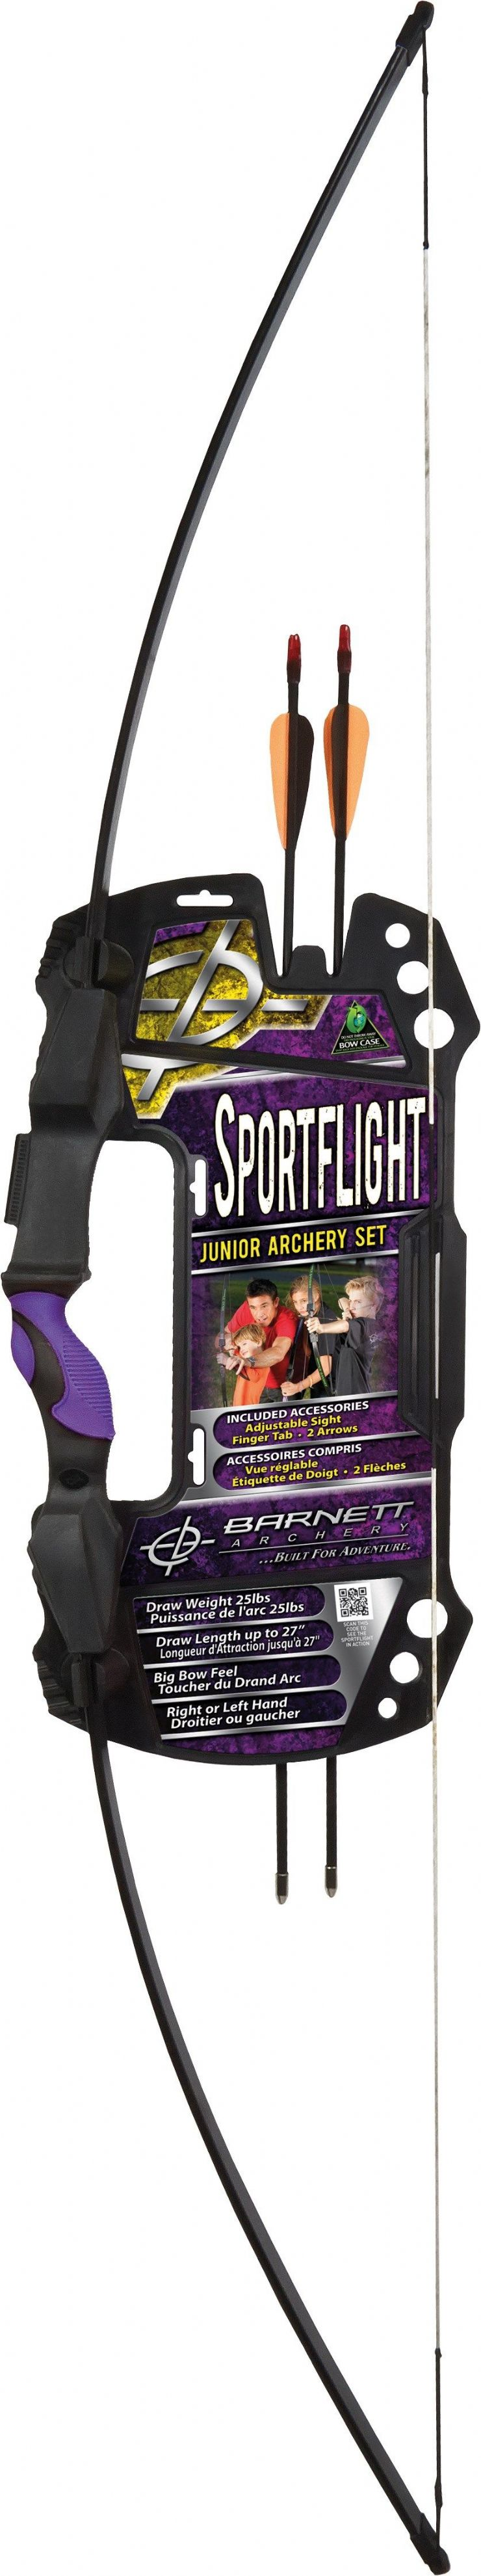 Barnett Sportflight Recurve Archery Set Review by ...